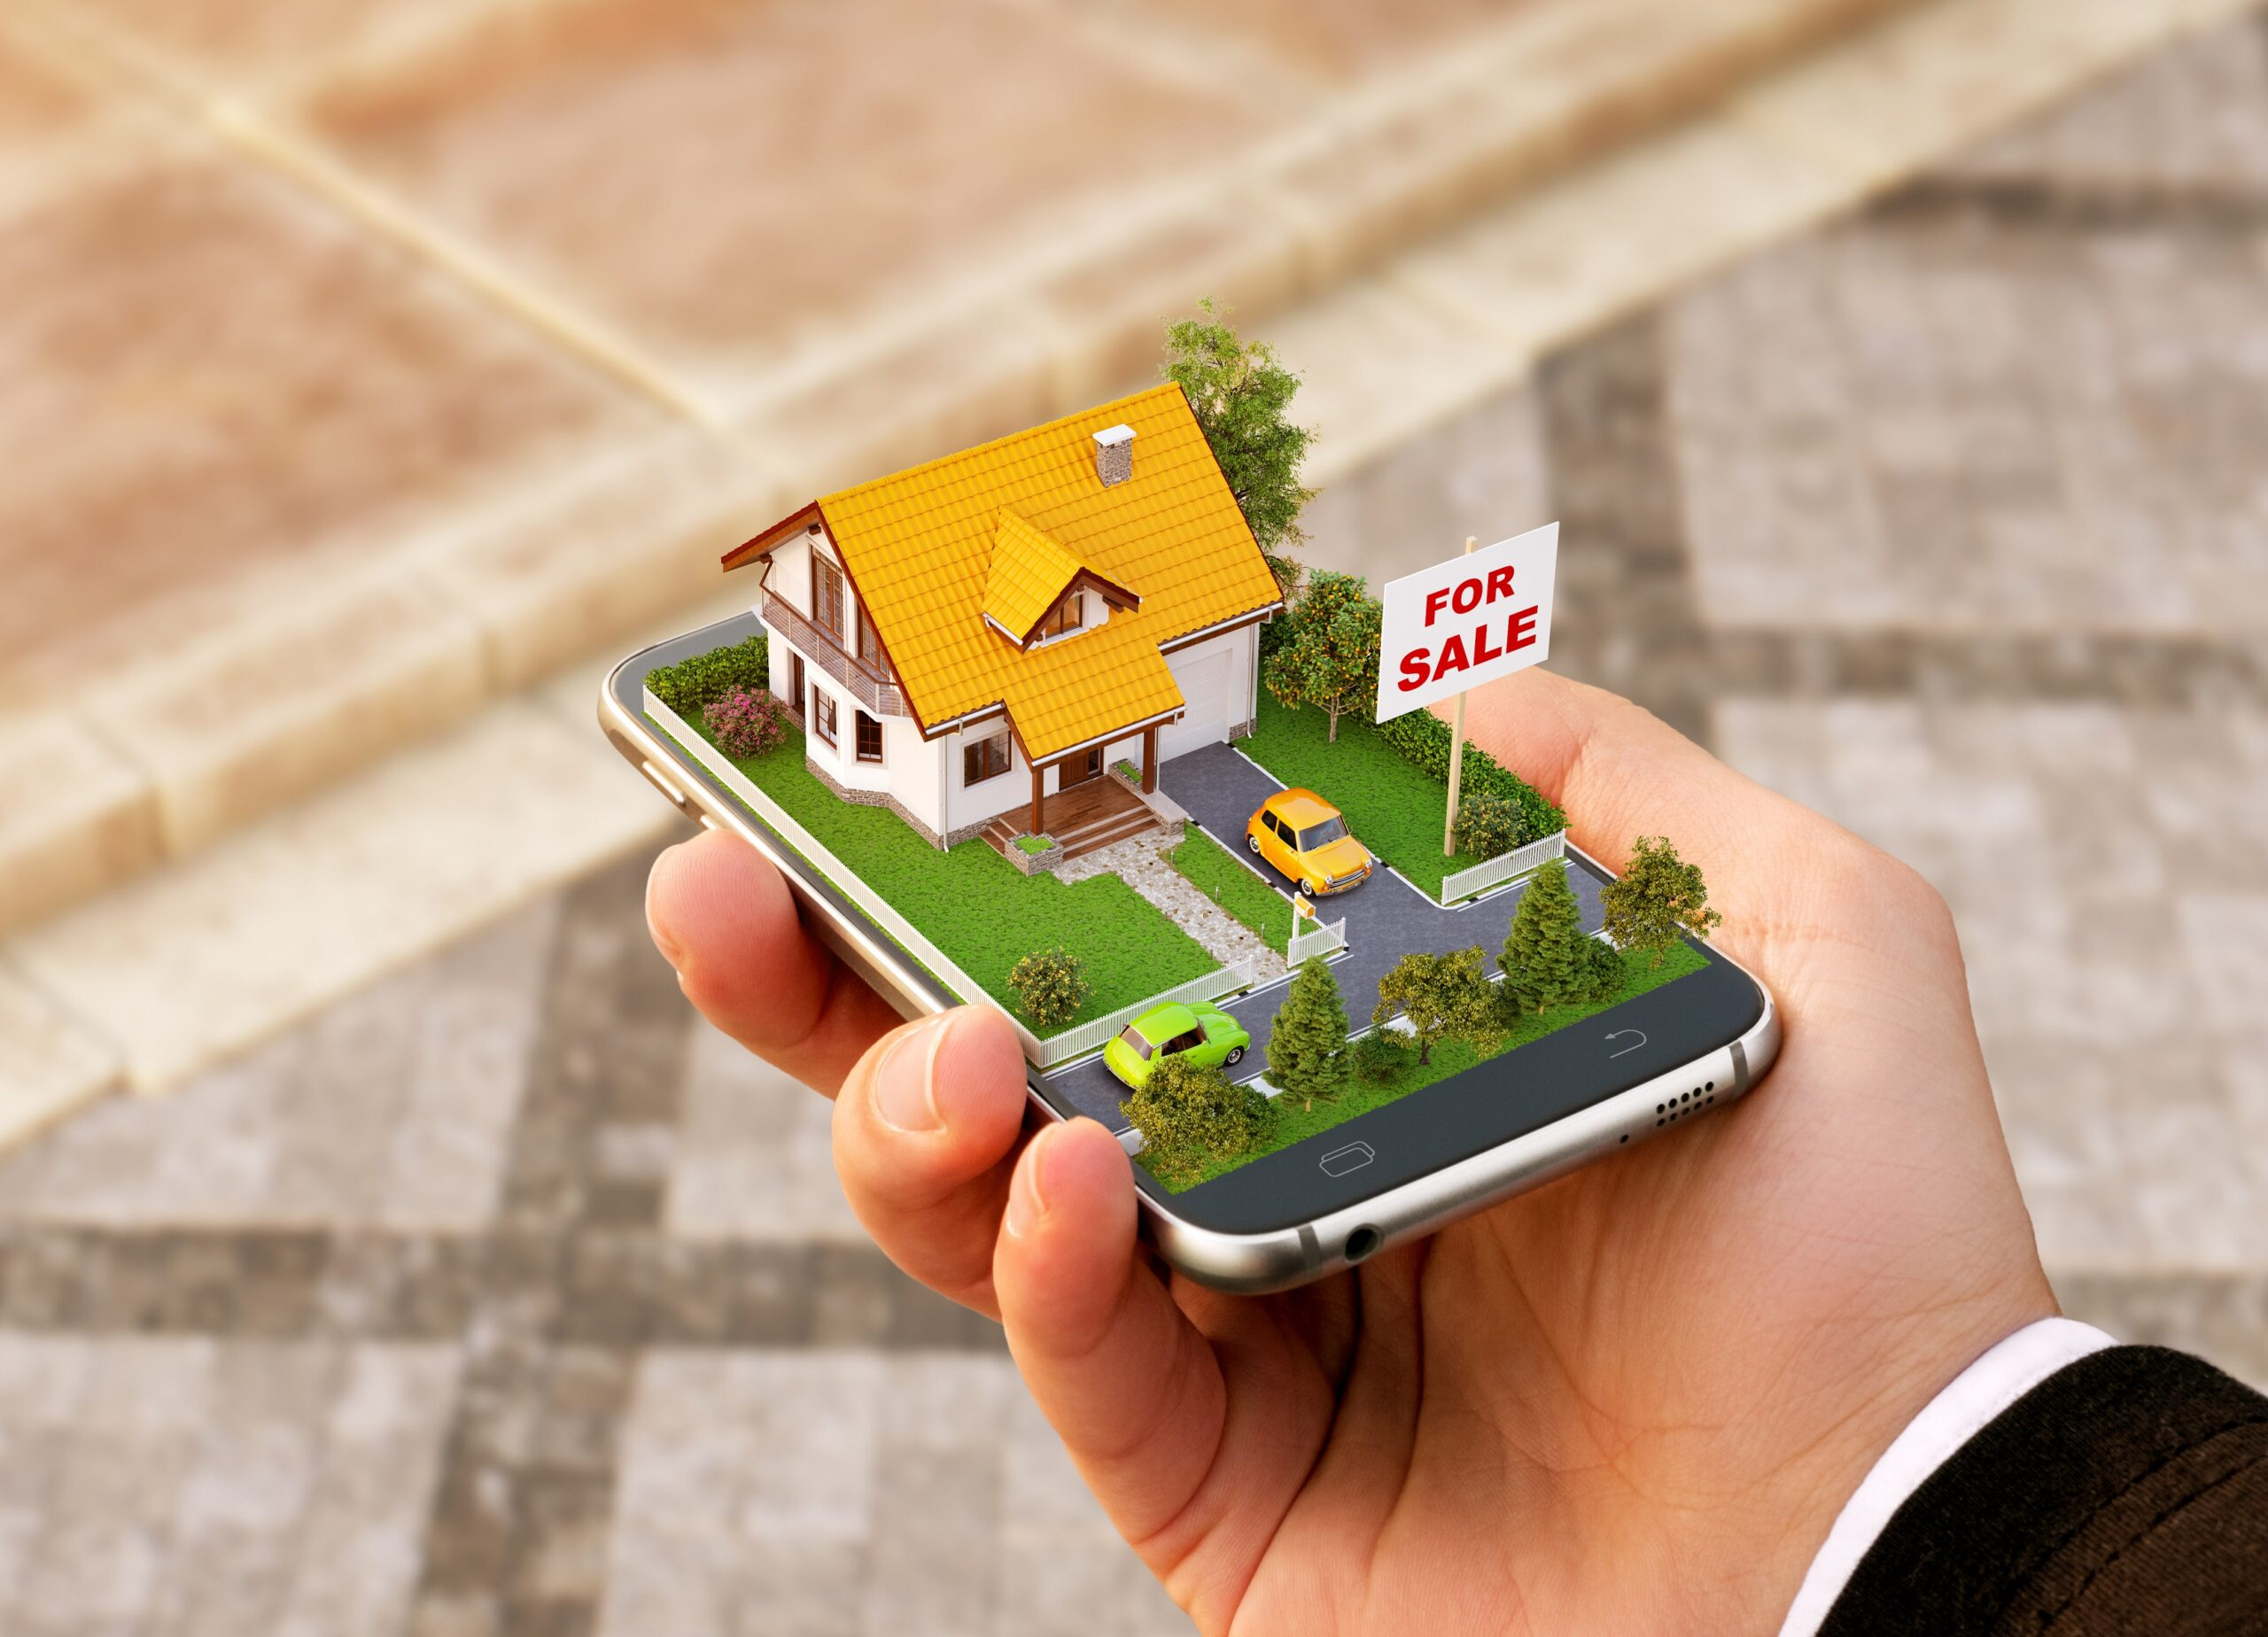 Real Estate Market Stays Open, Fewer In-Person Interactions